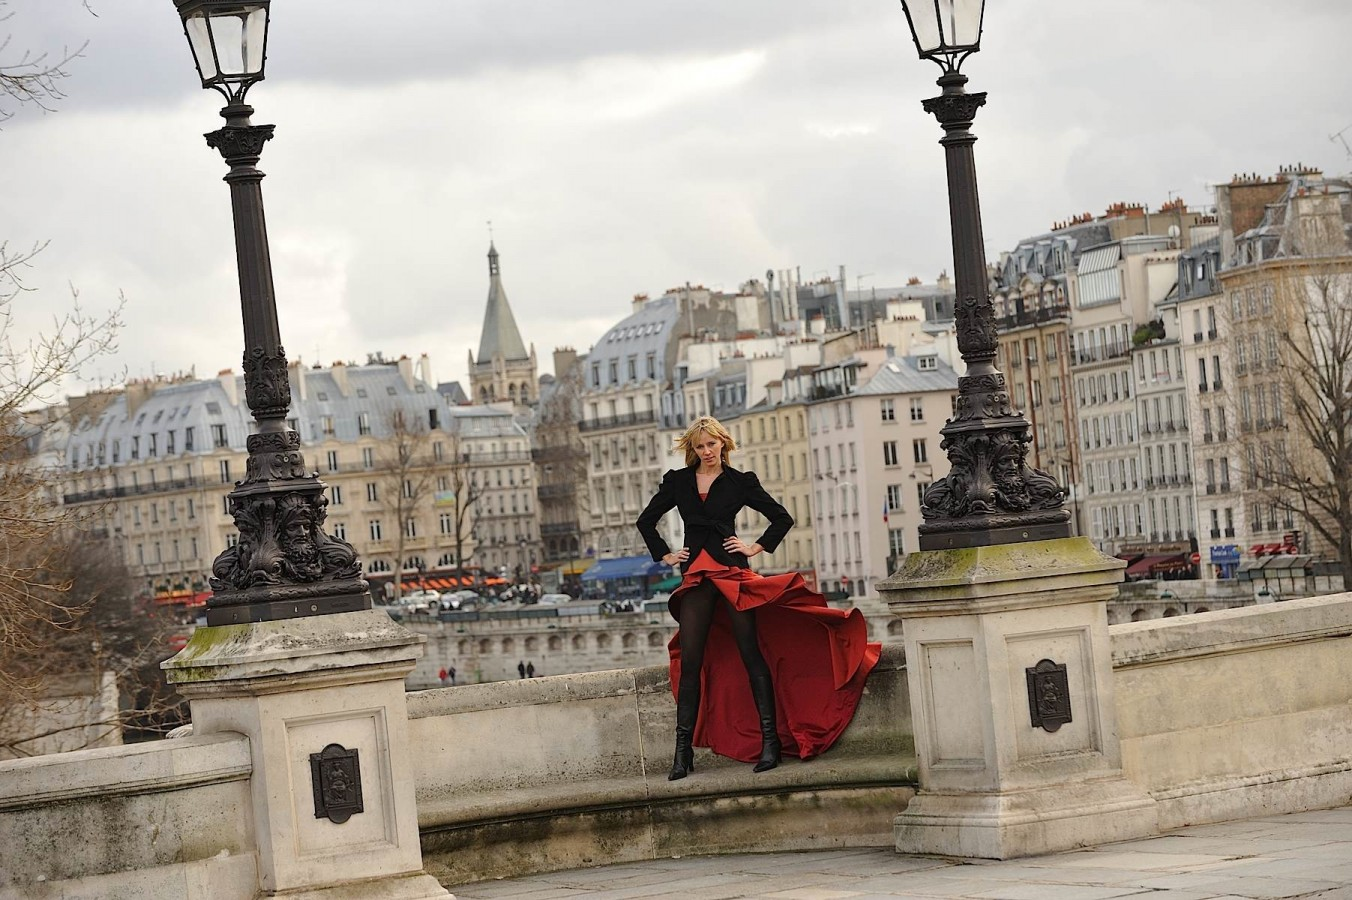 Fashion photography on the bridge, Paris